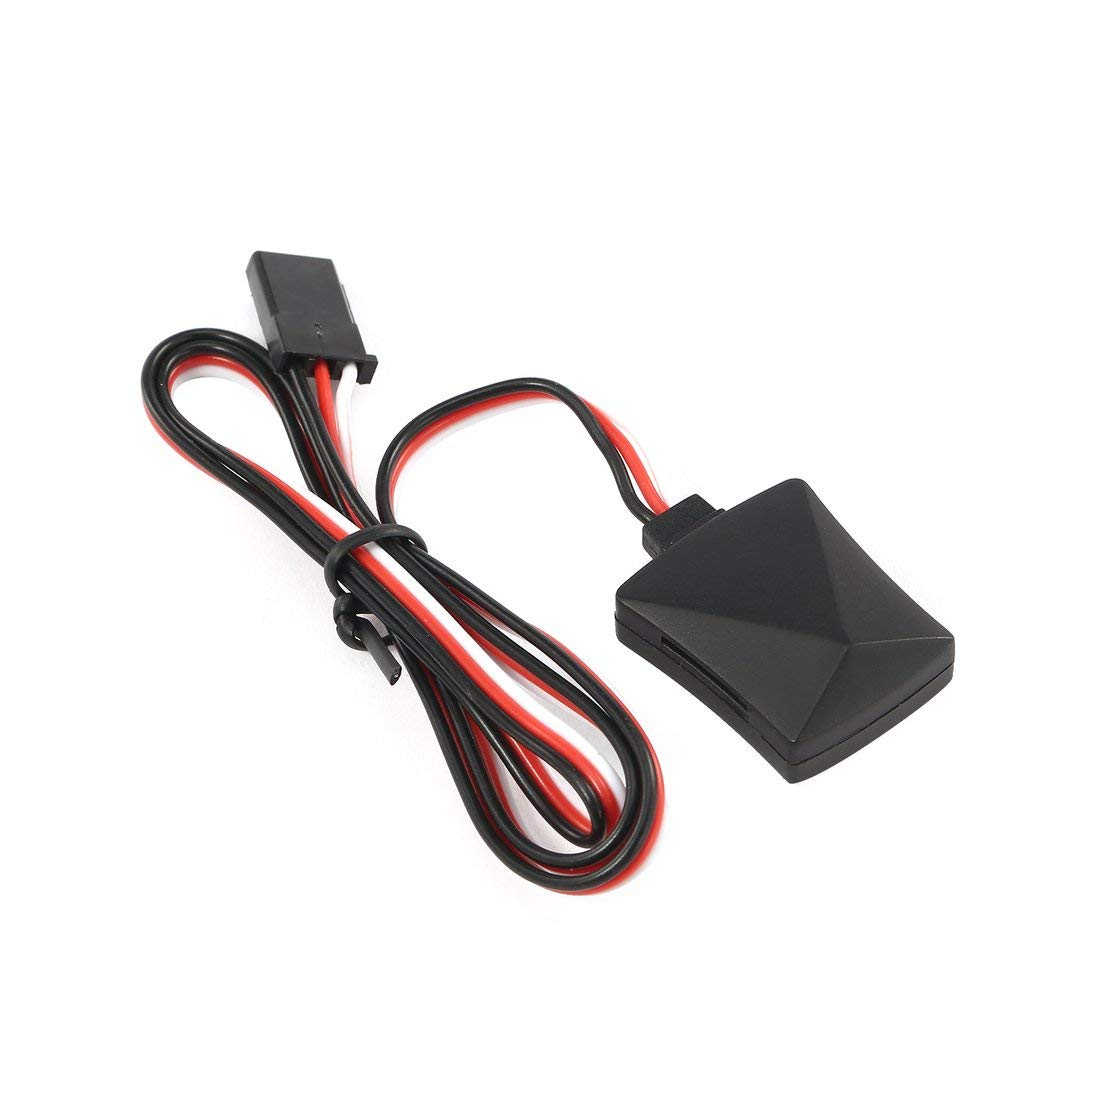 LouiseEvel215 Temperature Sensor Probe Checker Cable with Temperature Sensing compatible for iMAX B6 B6AC Battery Charger Temperature Control